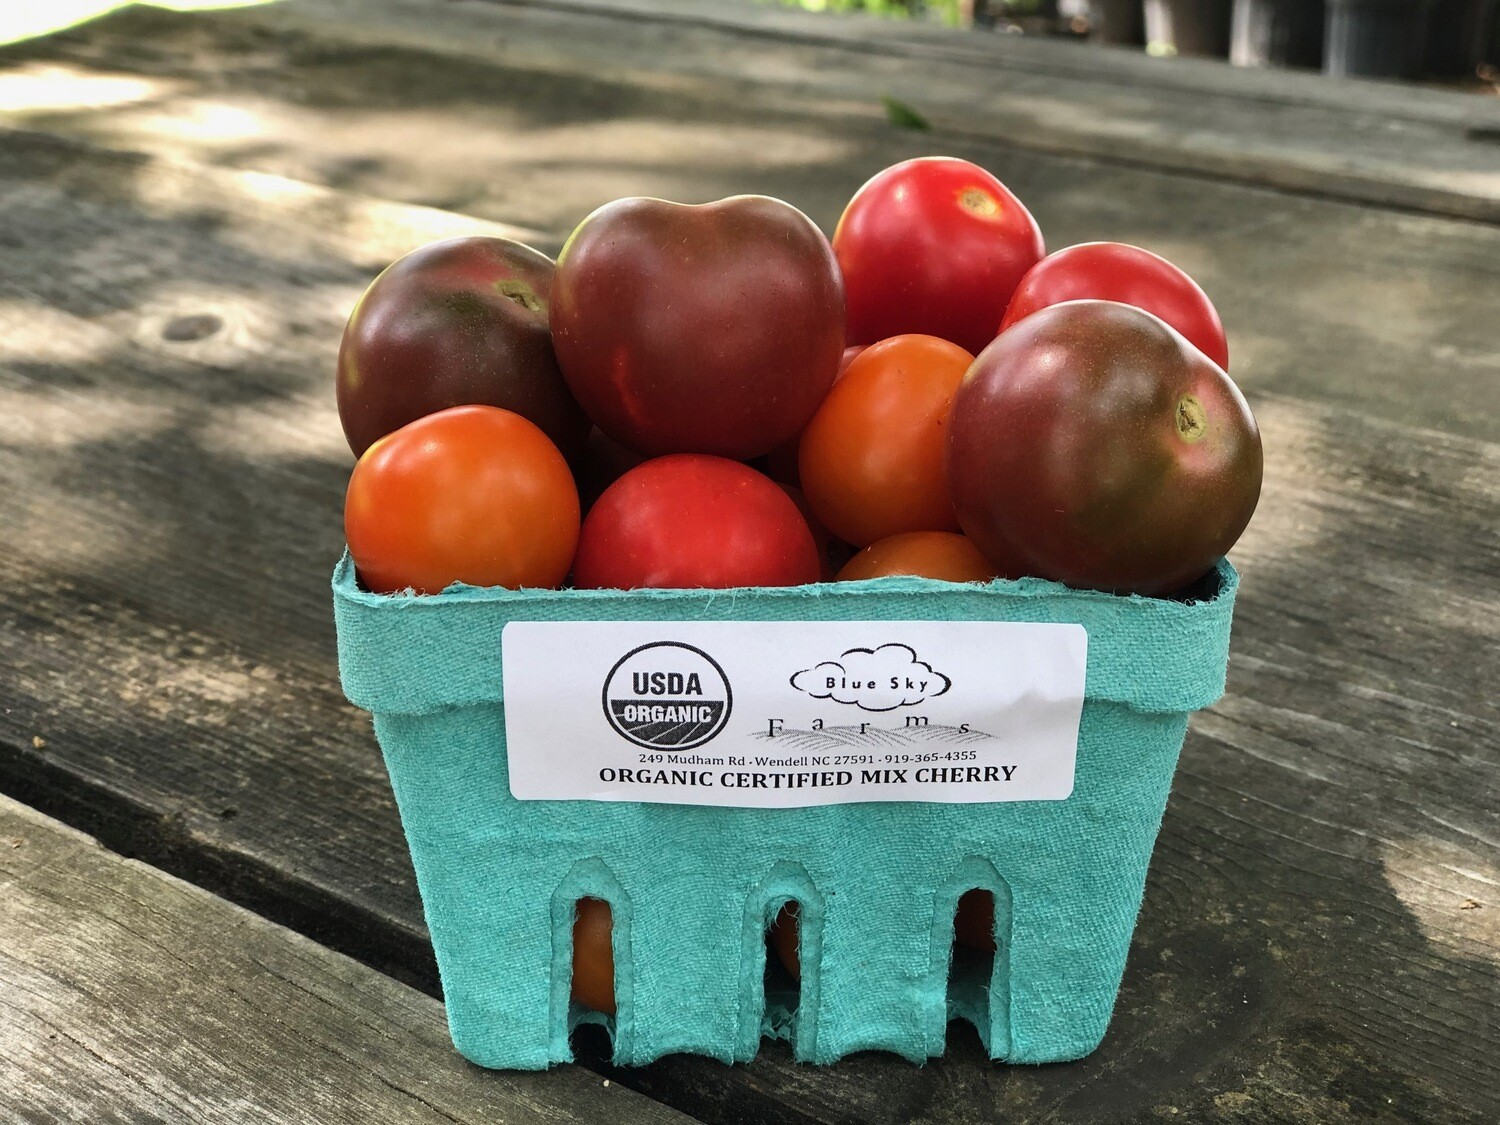 Certified Organic Blue Sky Mix Baby Cherry Tomatoes ~ 1 pint